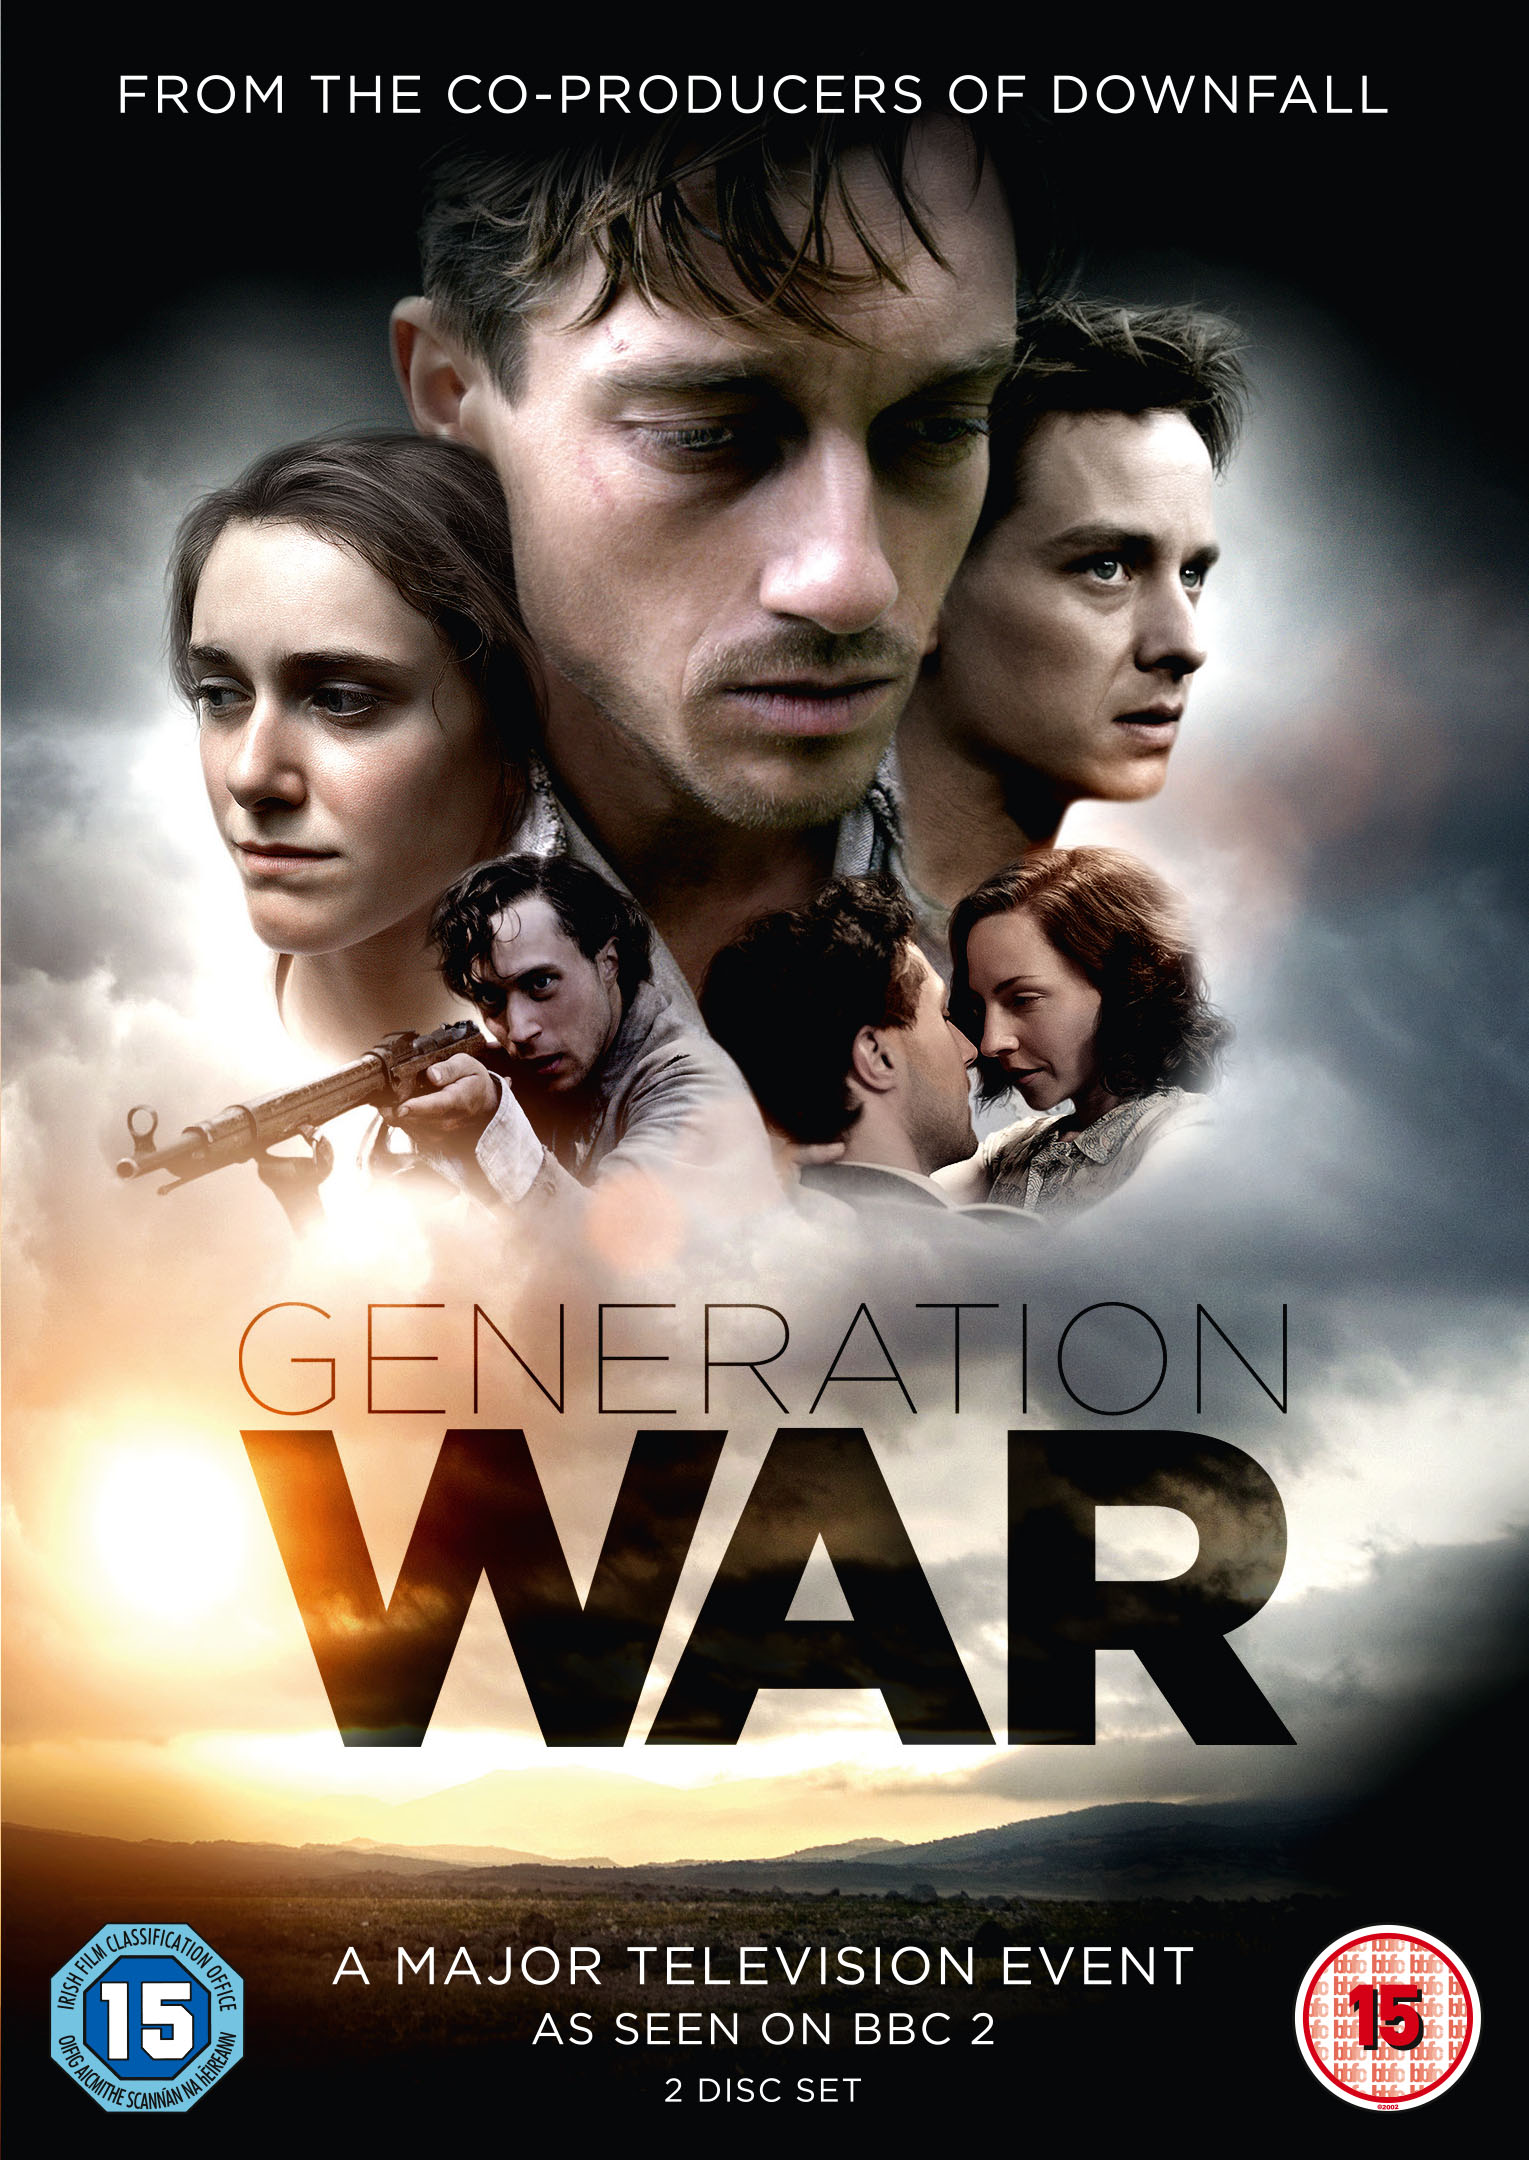 Win A Copy Of Generation War on DVD